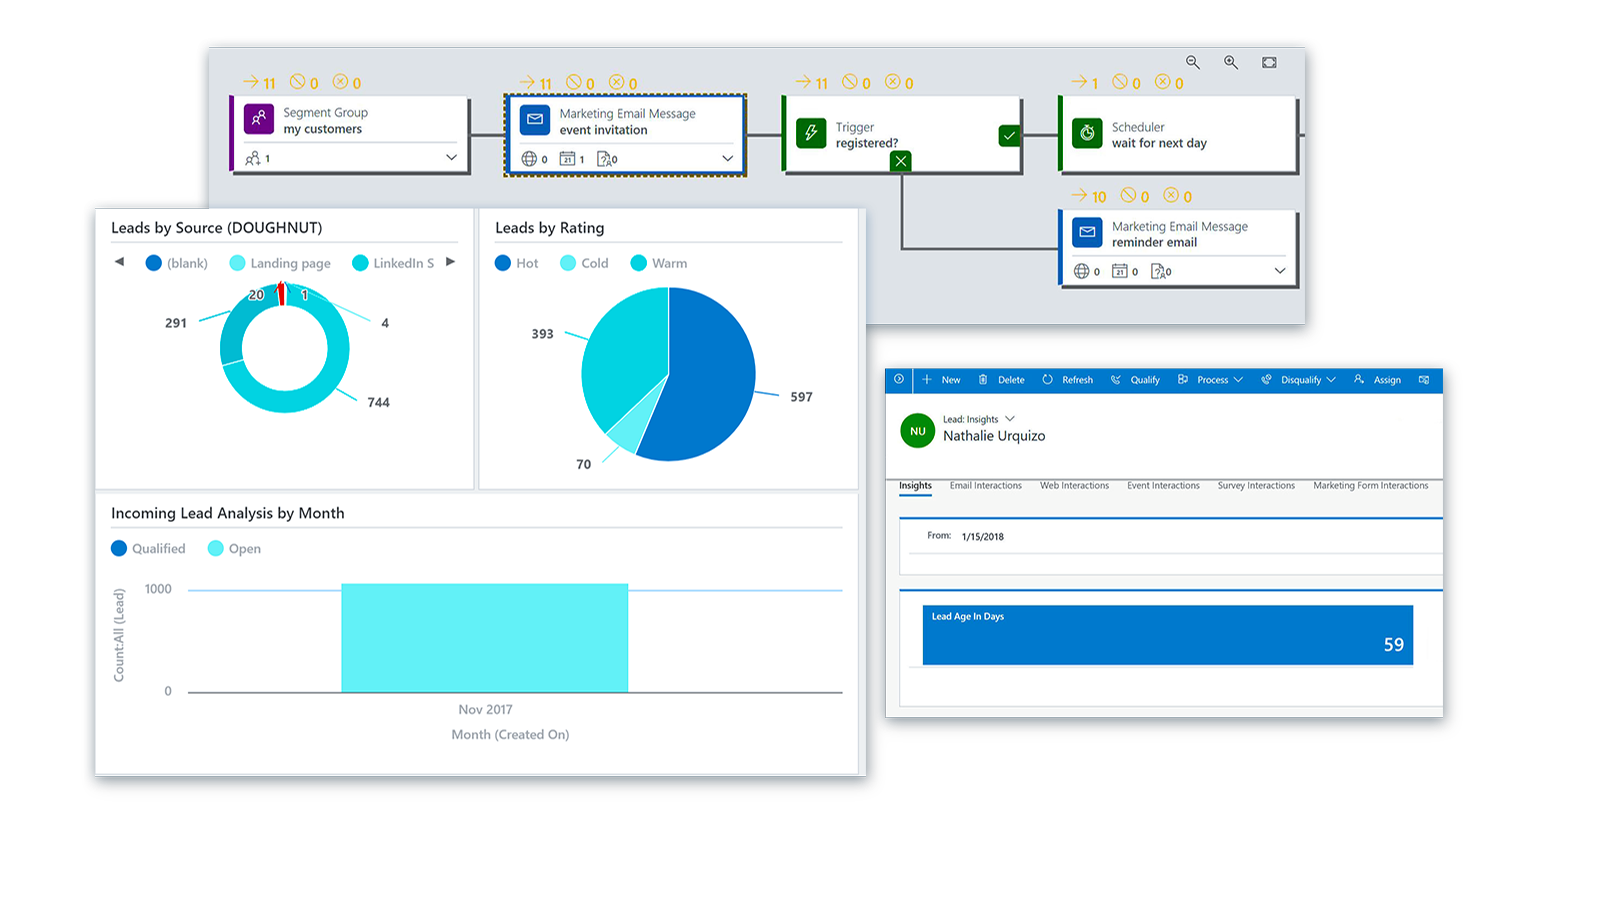 Dynamics 365 for Marketing smarter decisions